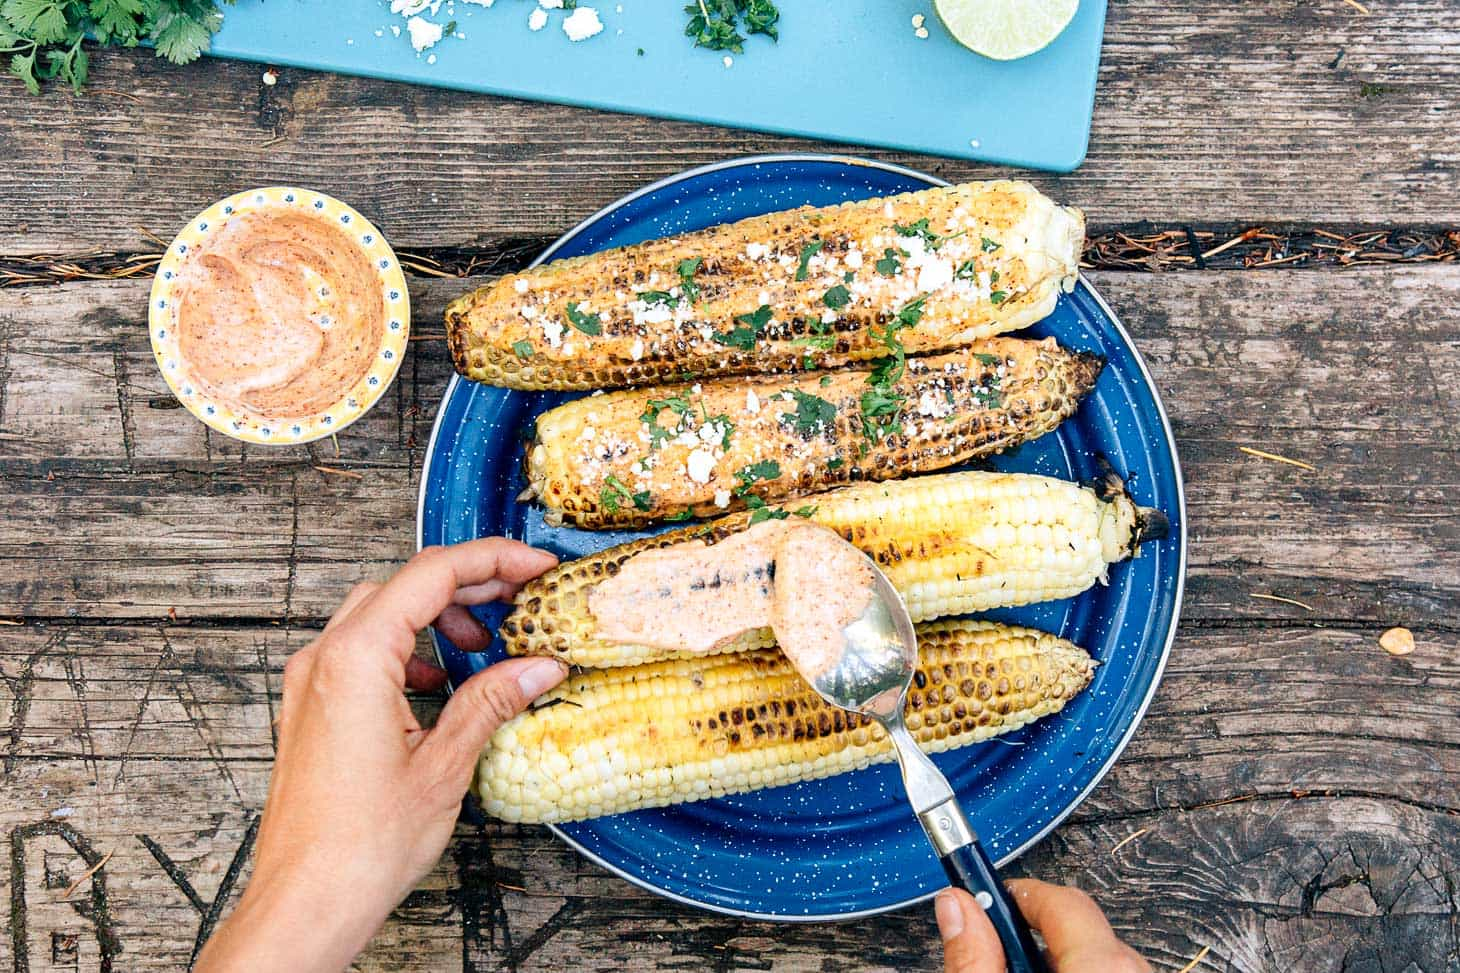 Making elote - grilled corn served with spicy mayo and Cojita cheese - a perfect camping appetizer.